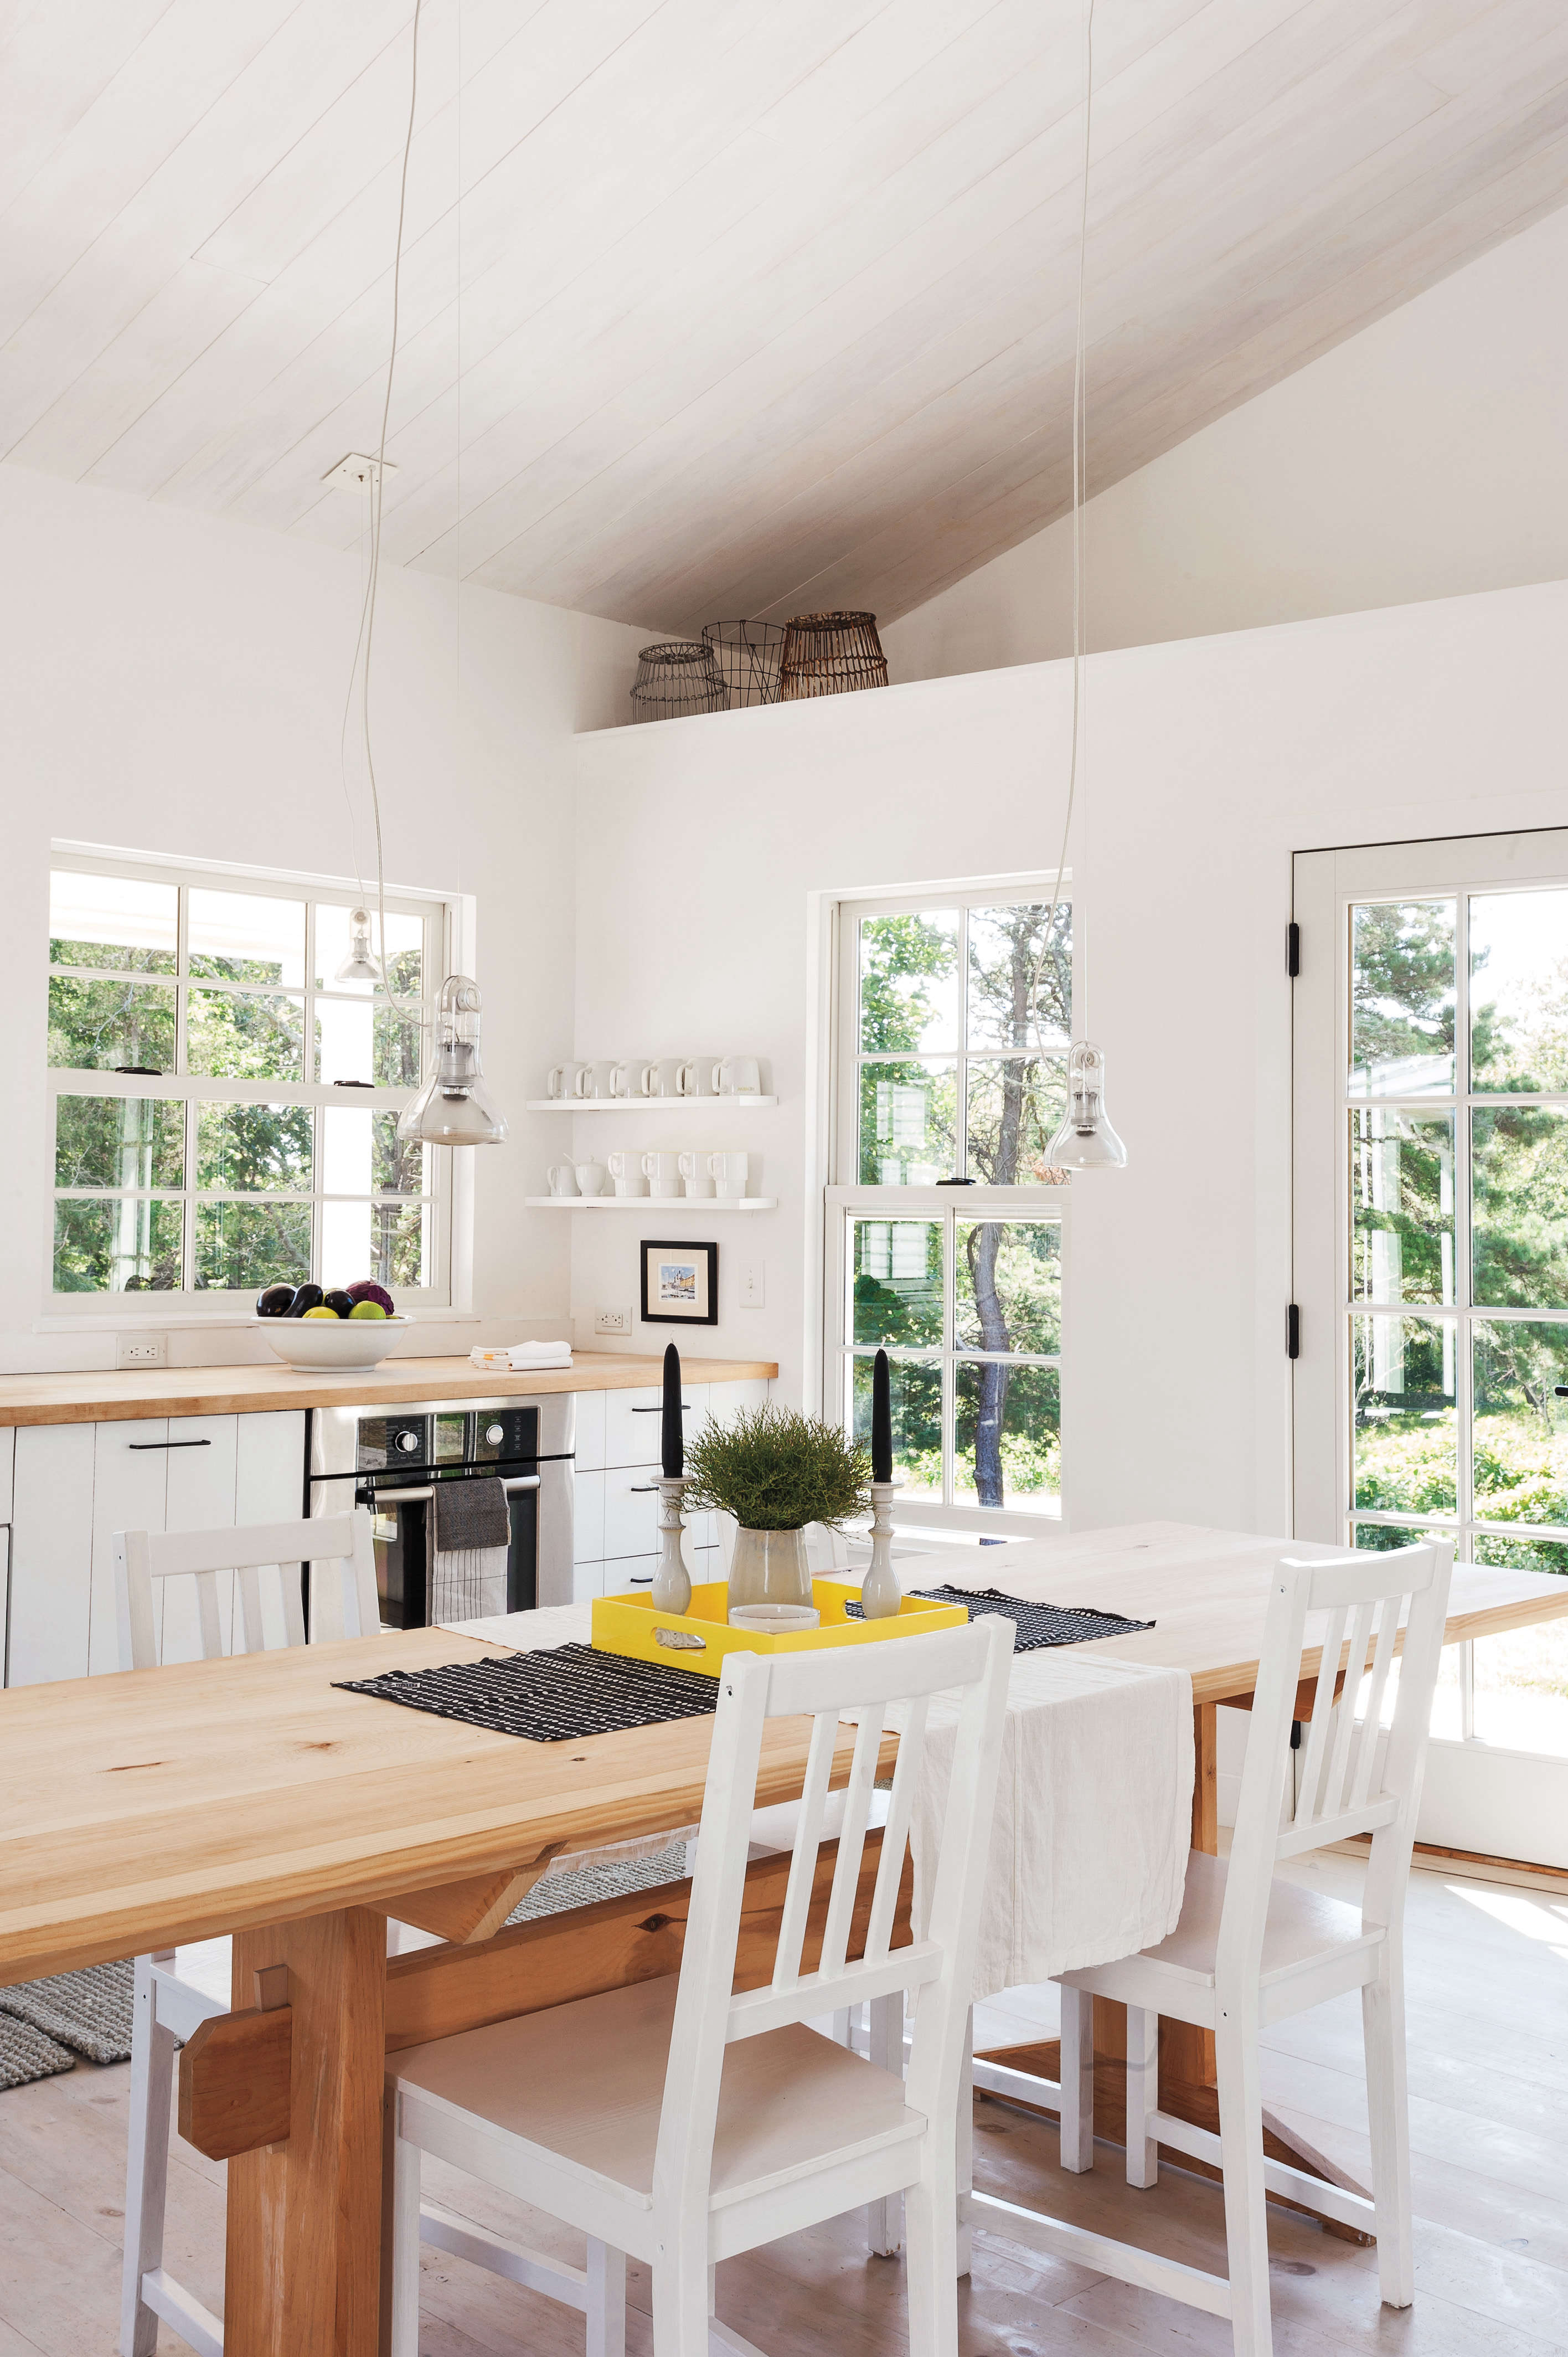 Kitchen of the Week: A Streamlined Cape Cod Classic - Remodelista